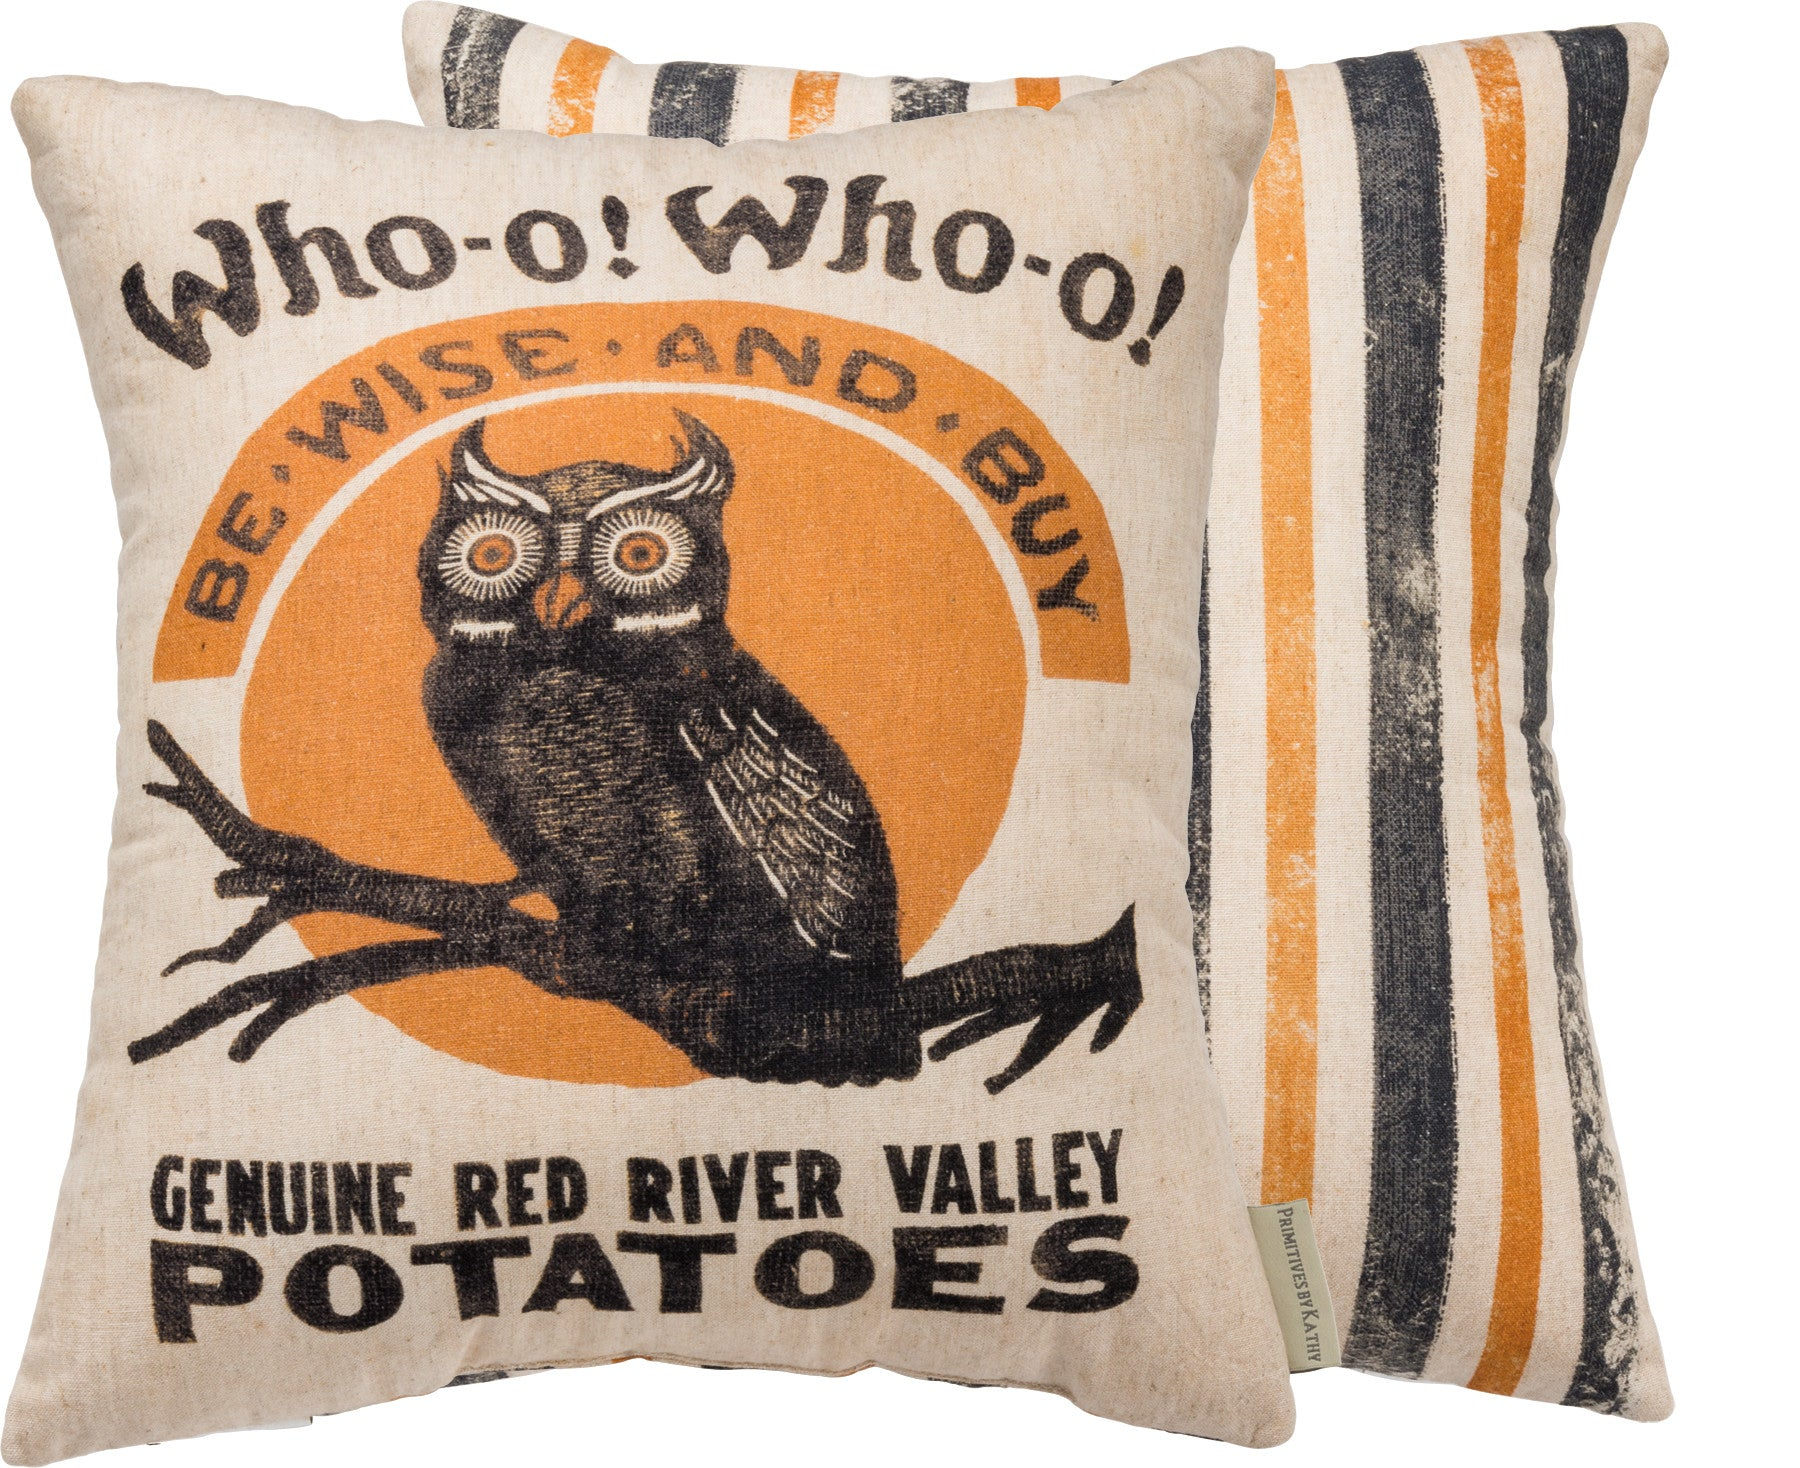 Wise Owl Potato Sack Pillow